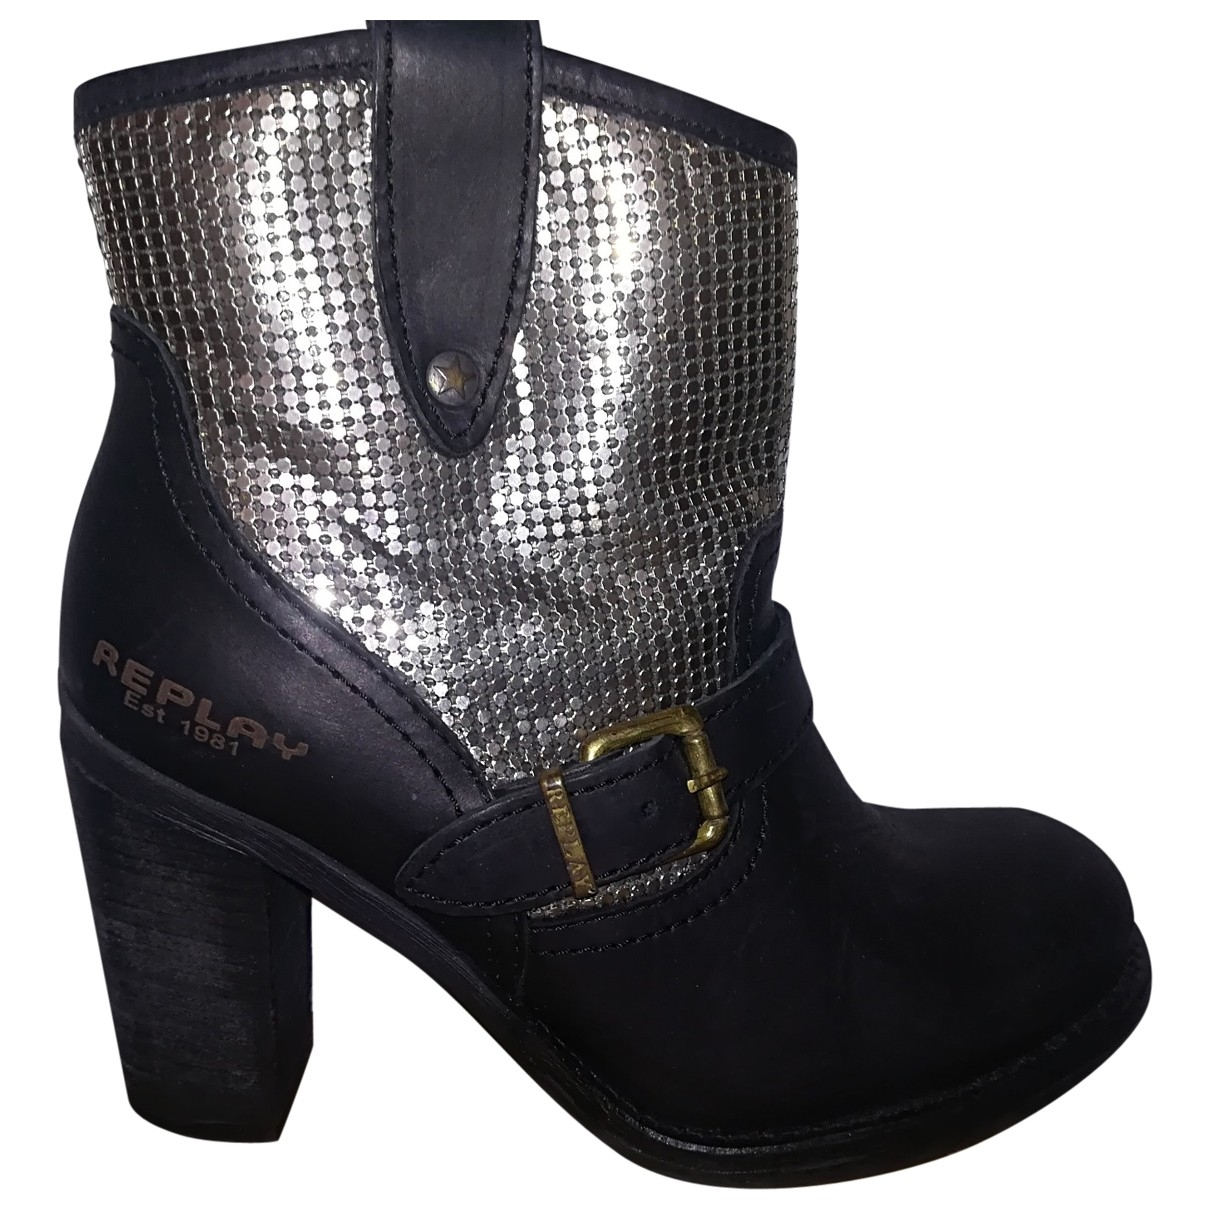 Replay \N Black Leather Boots for Women 38 EU